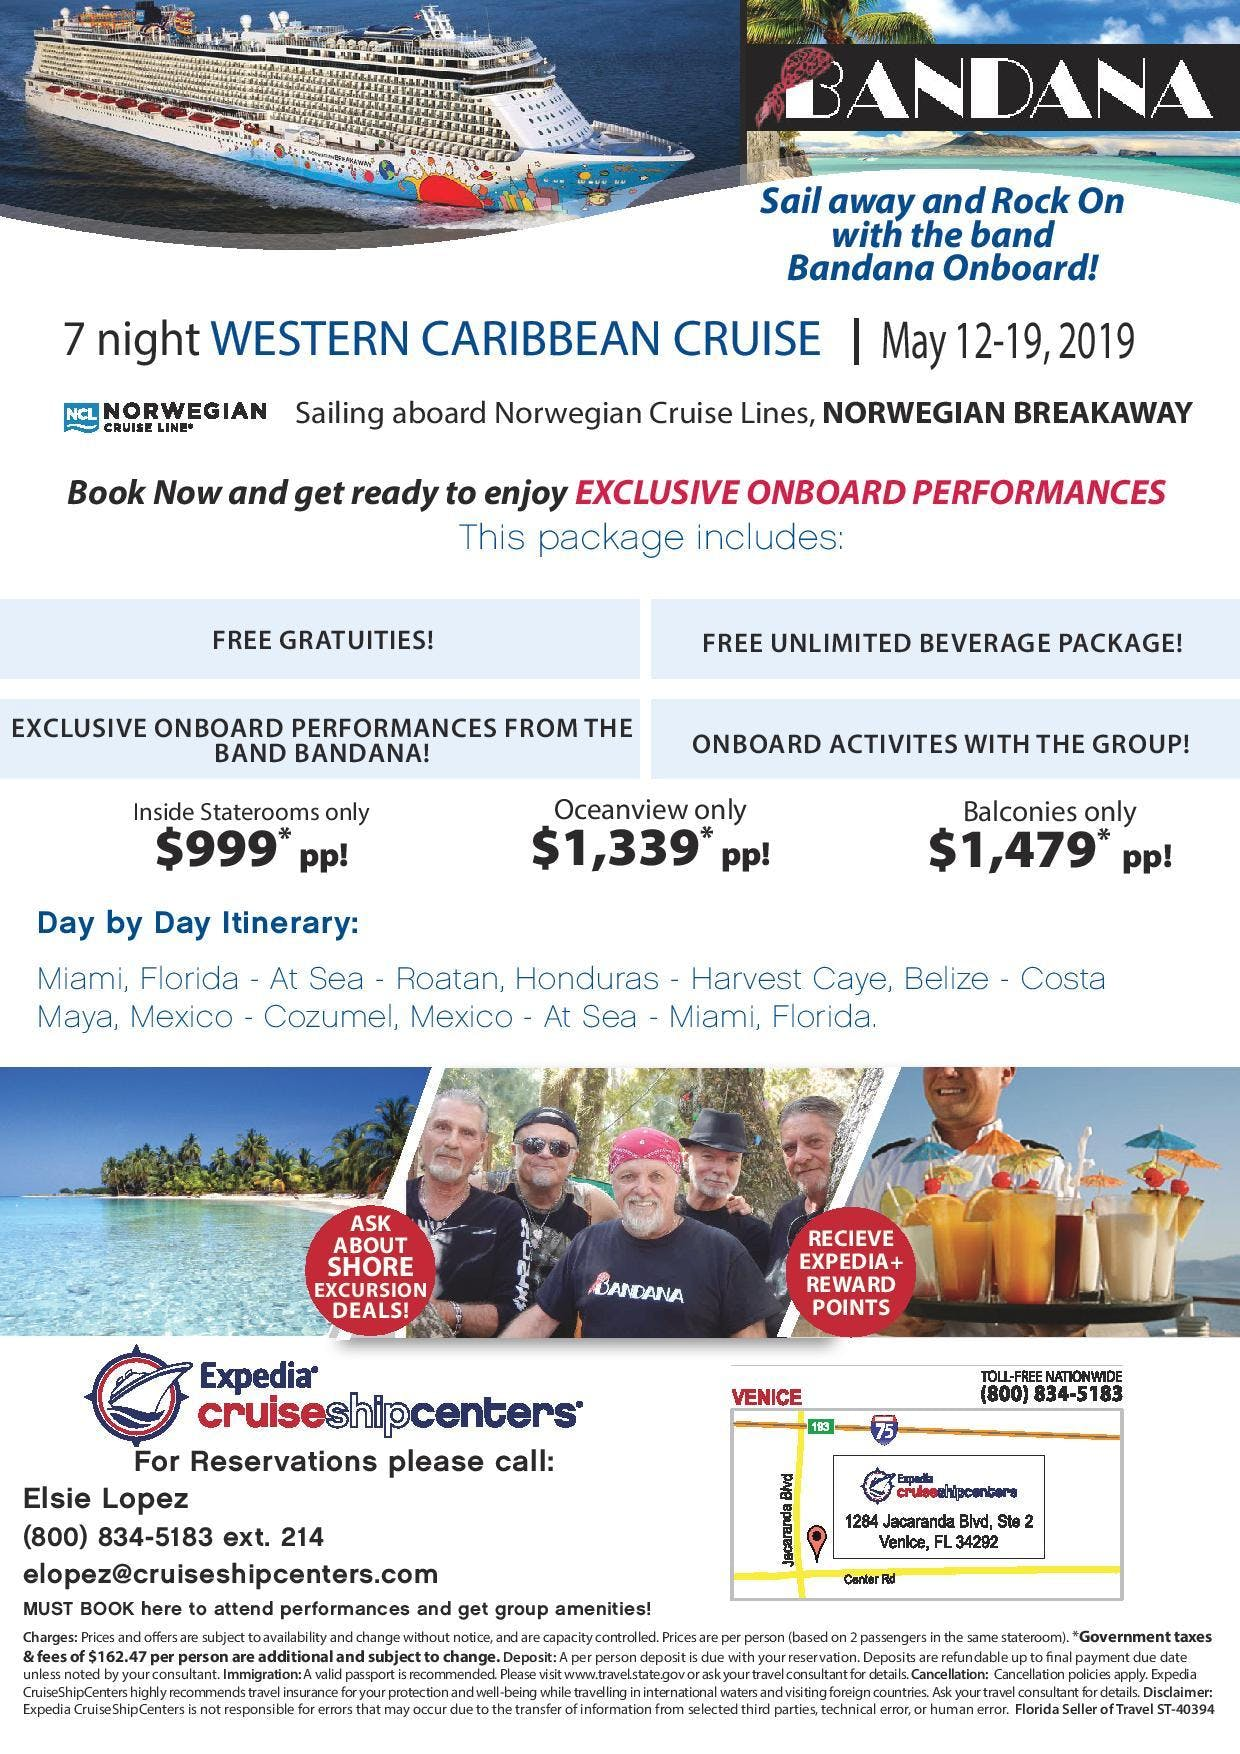 Bbw Cruise Events In The City Top Upcoming Events For Bbw